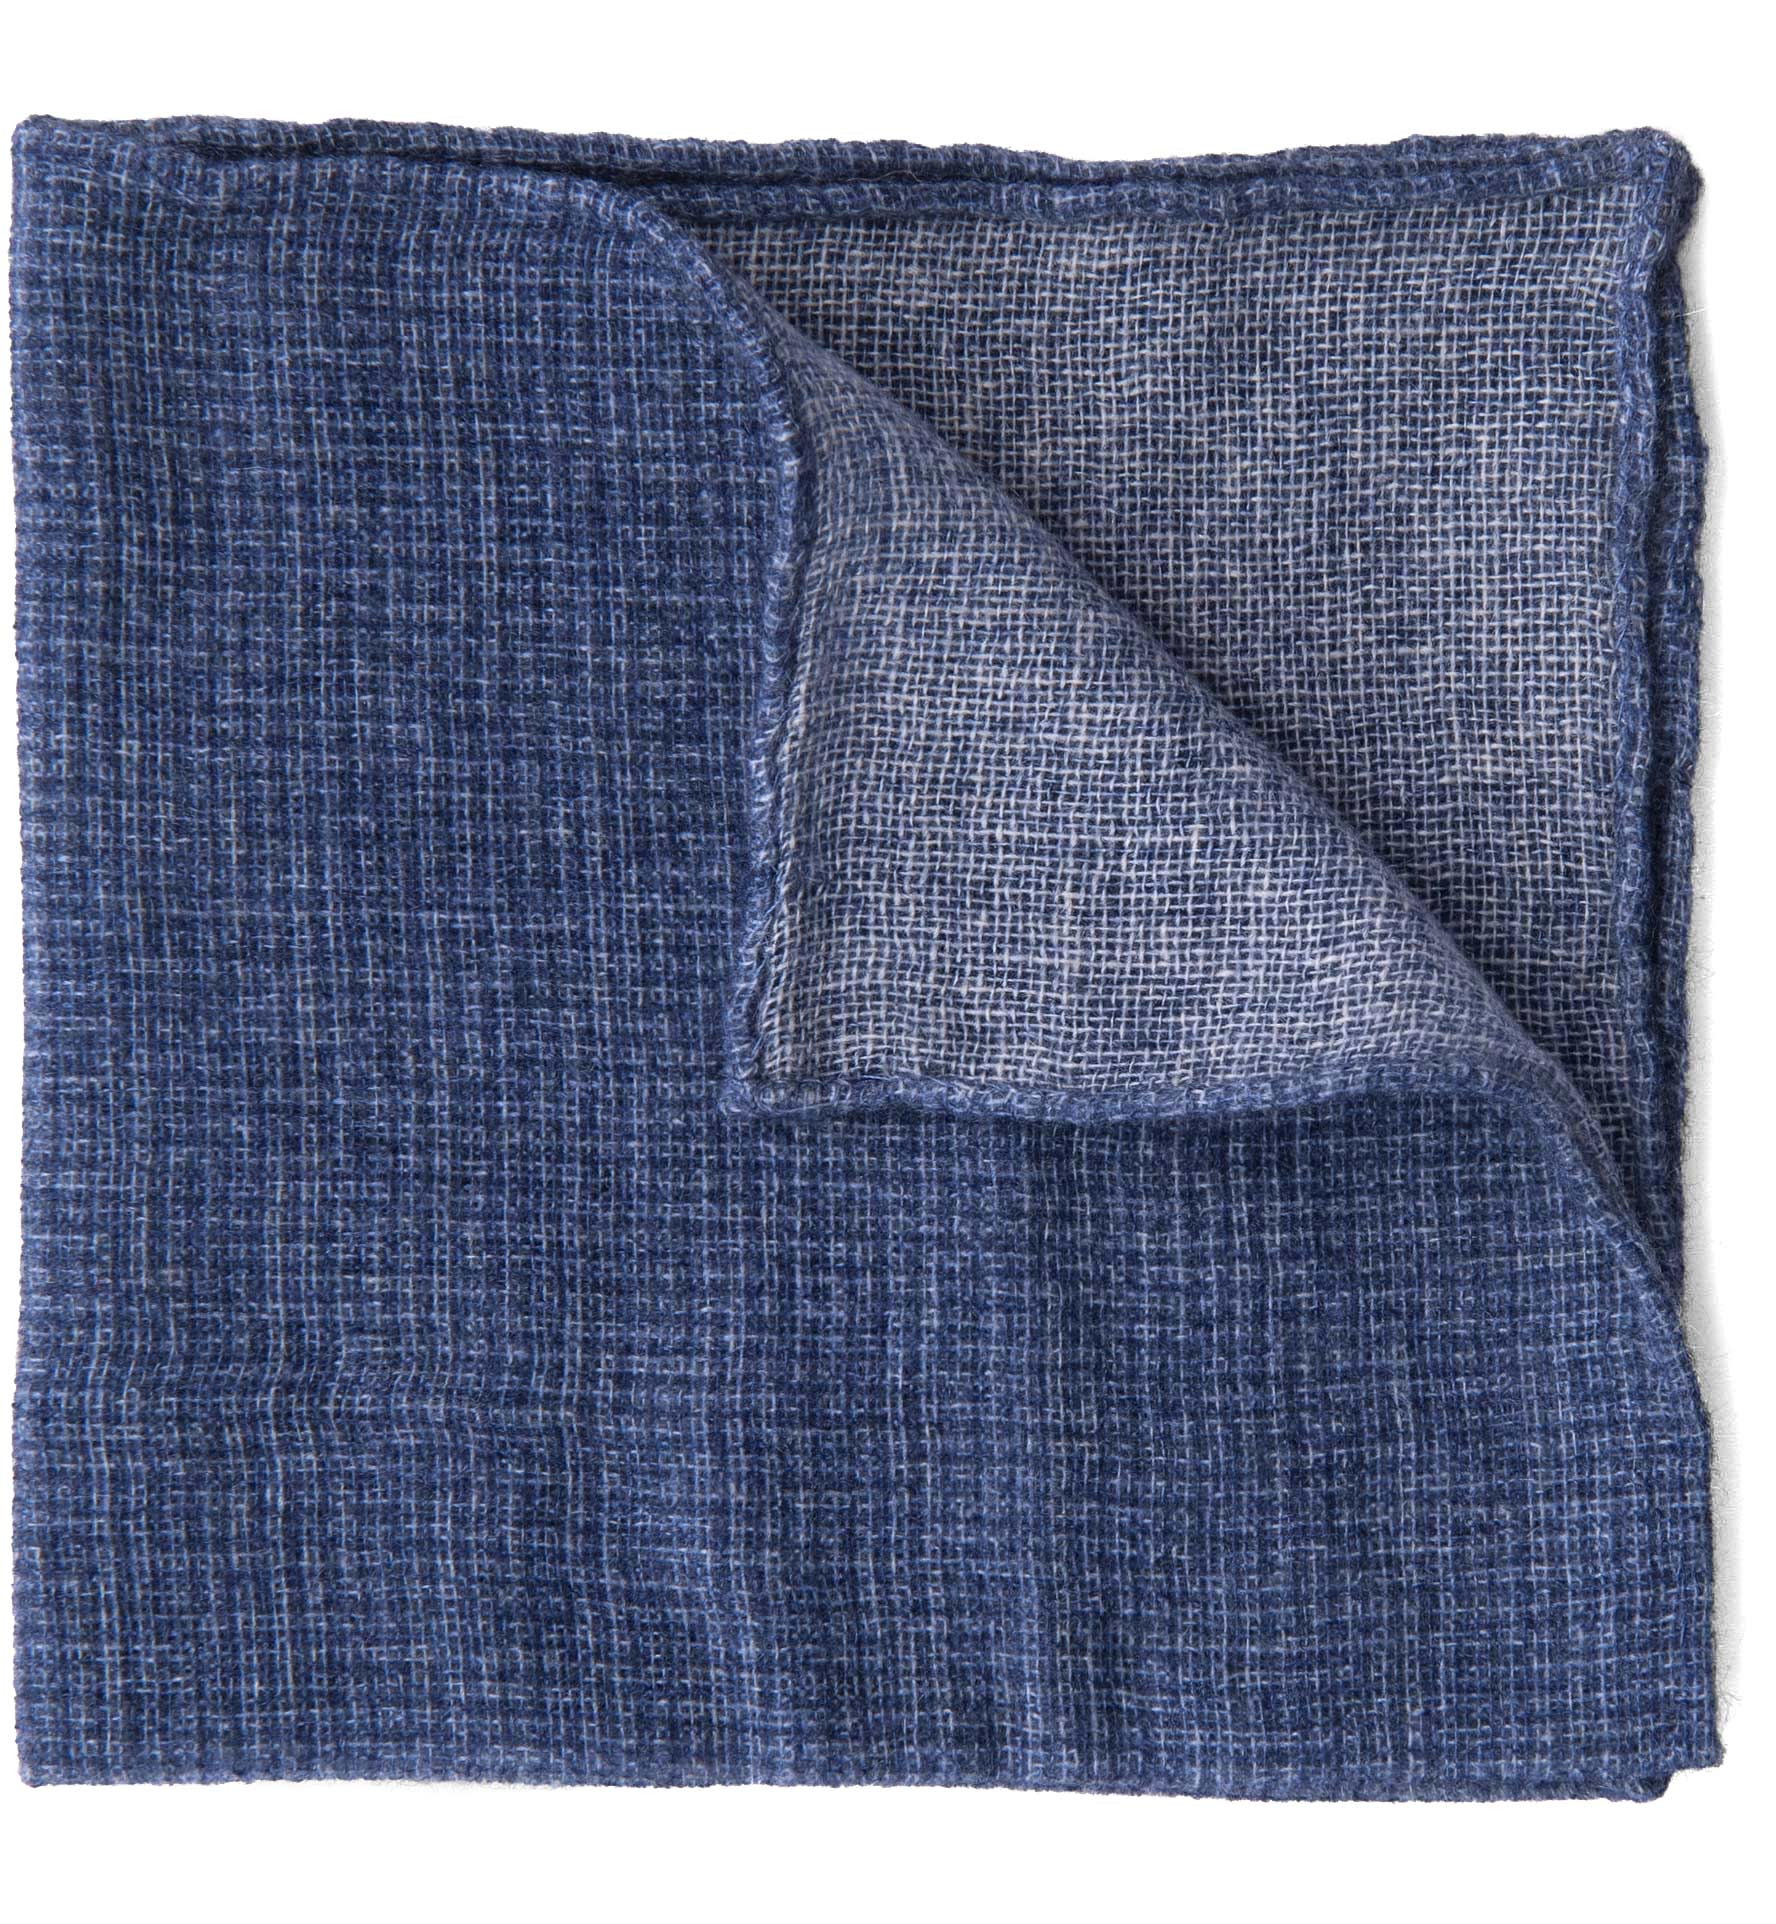 Zoom Image of Ocean Cashmere Micro Check Pocket Square